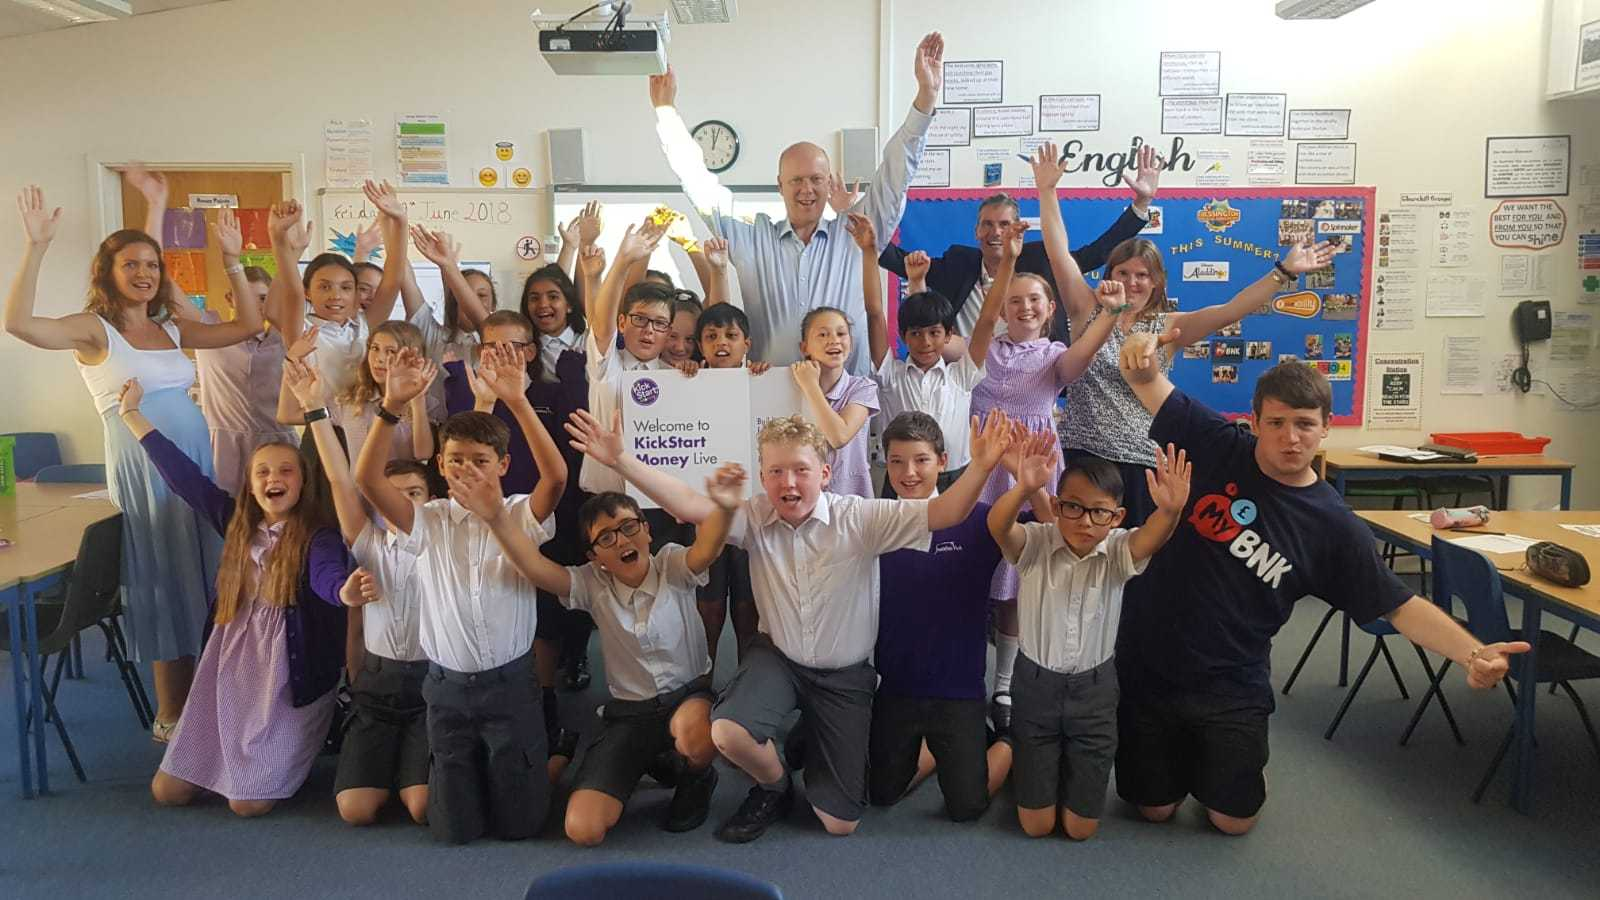 Local MP Chris Grayling visited Southfield Park Primary School